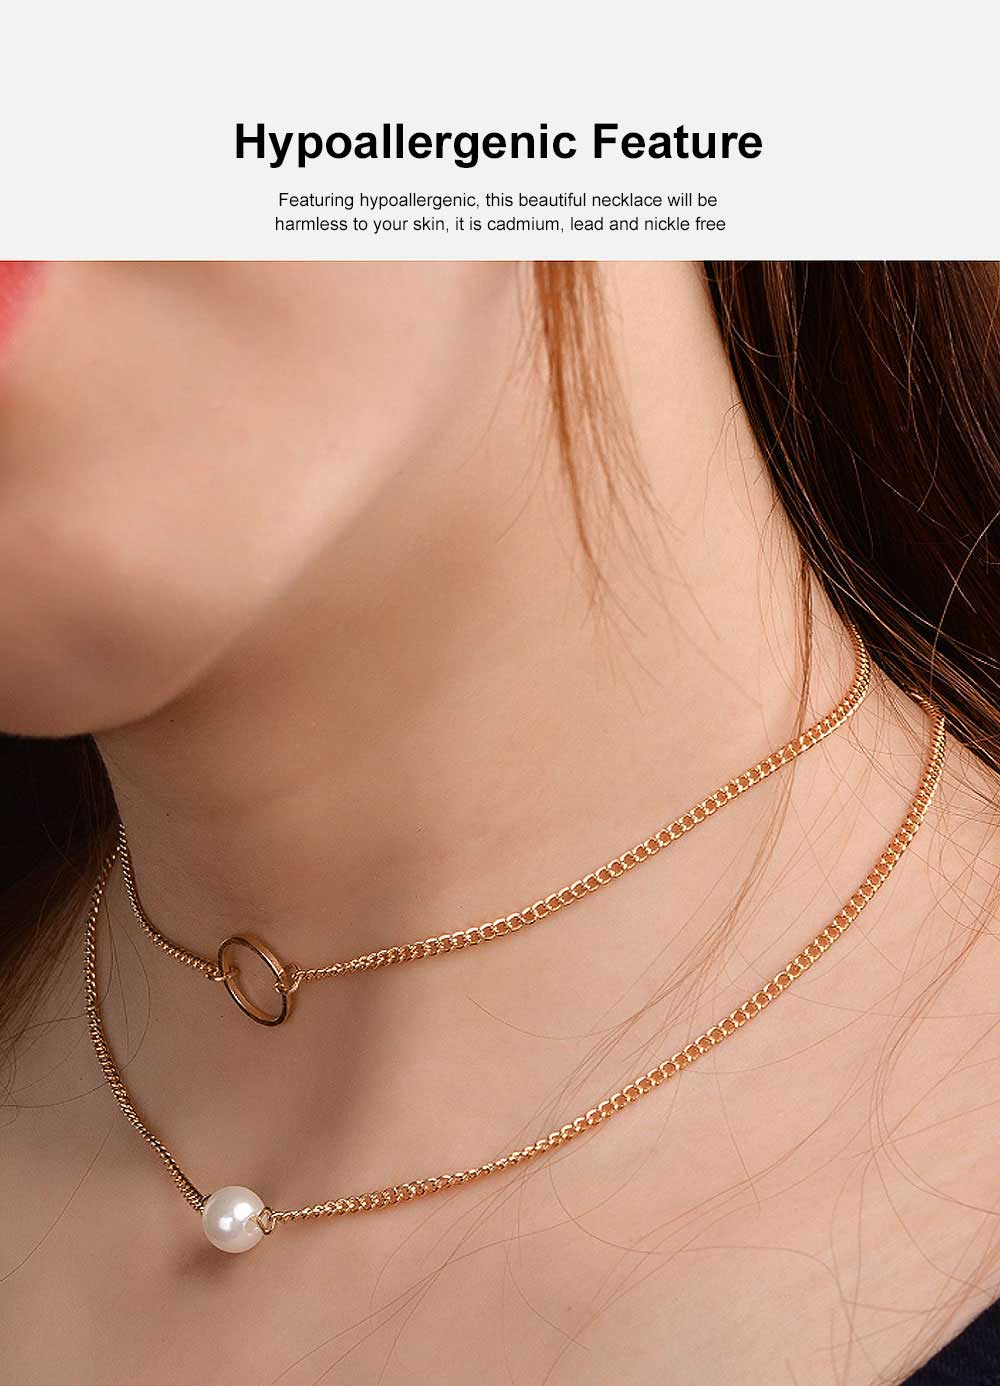 Layered Choker Necklace Pearl Pendant Necklace Double Anti-Rusty Chain Personalized Jewelry Gift for Women 4